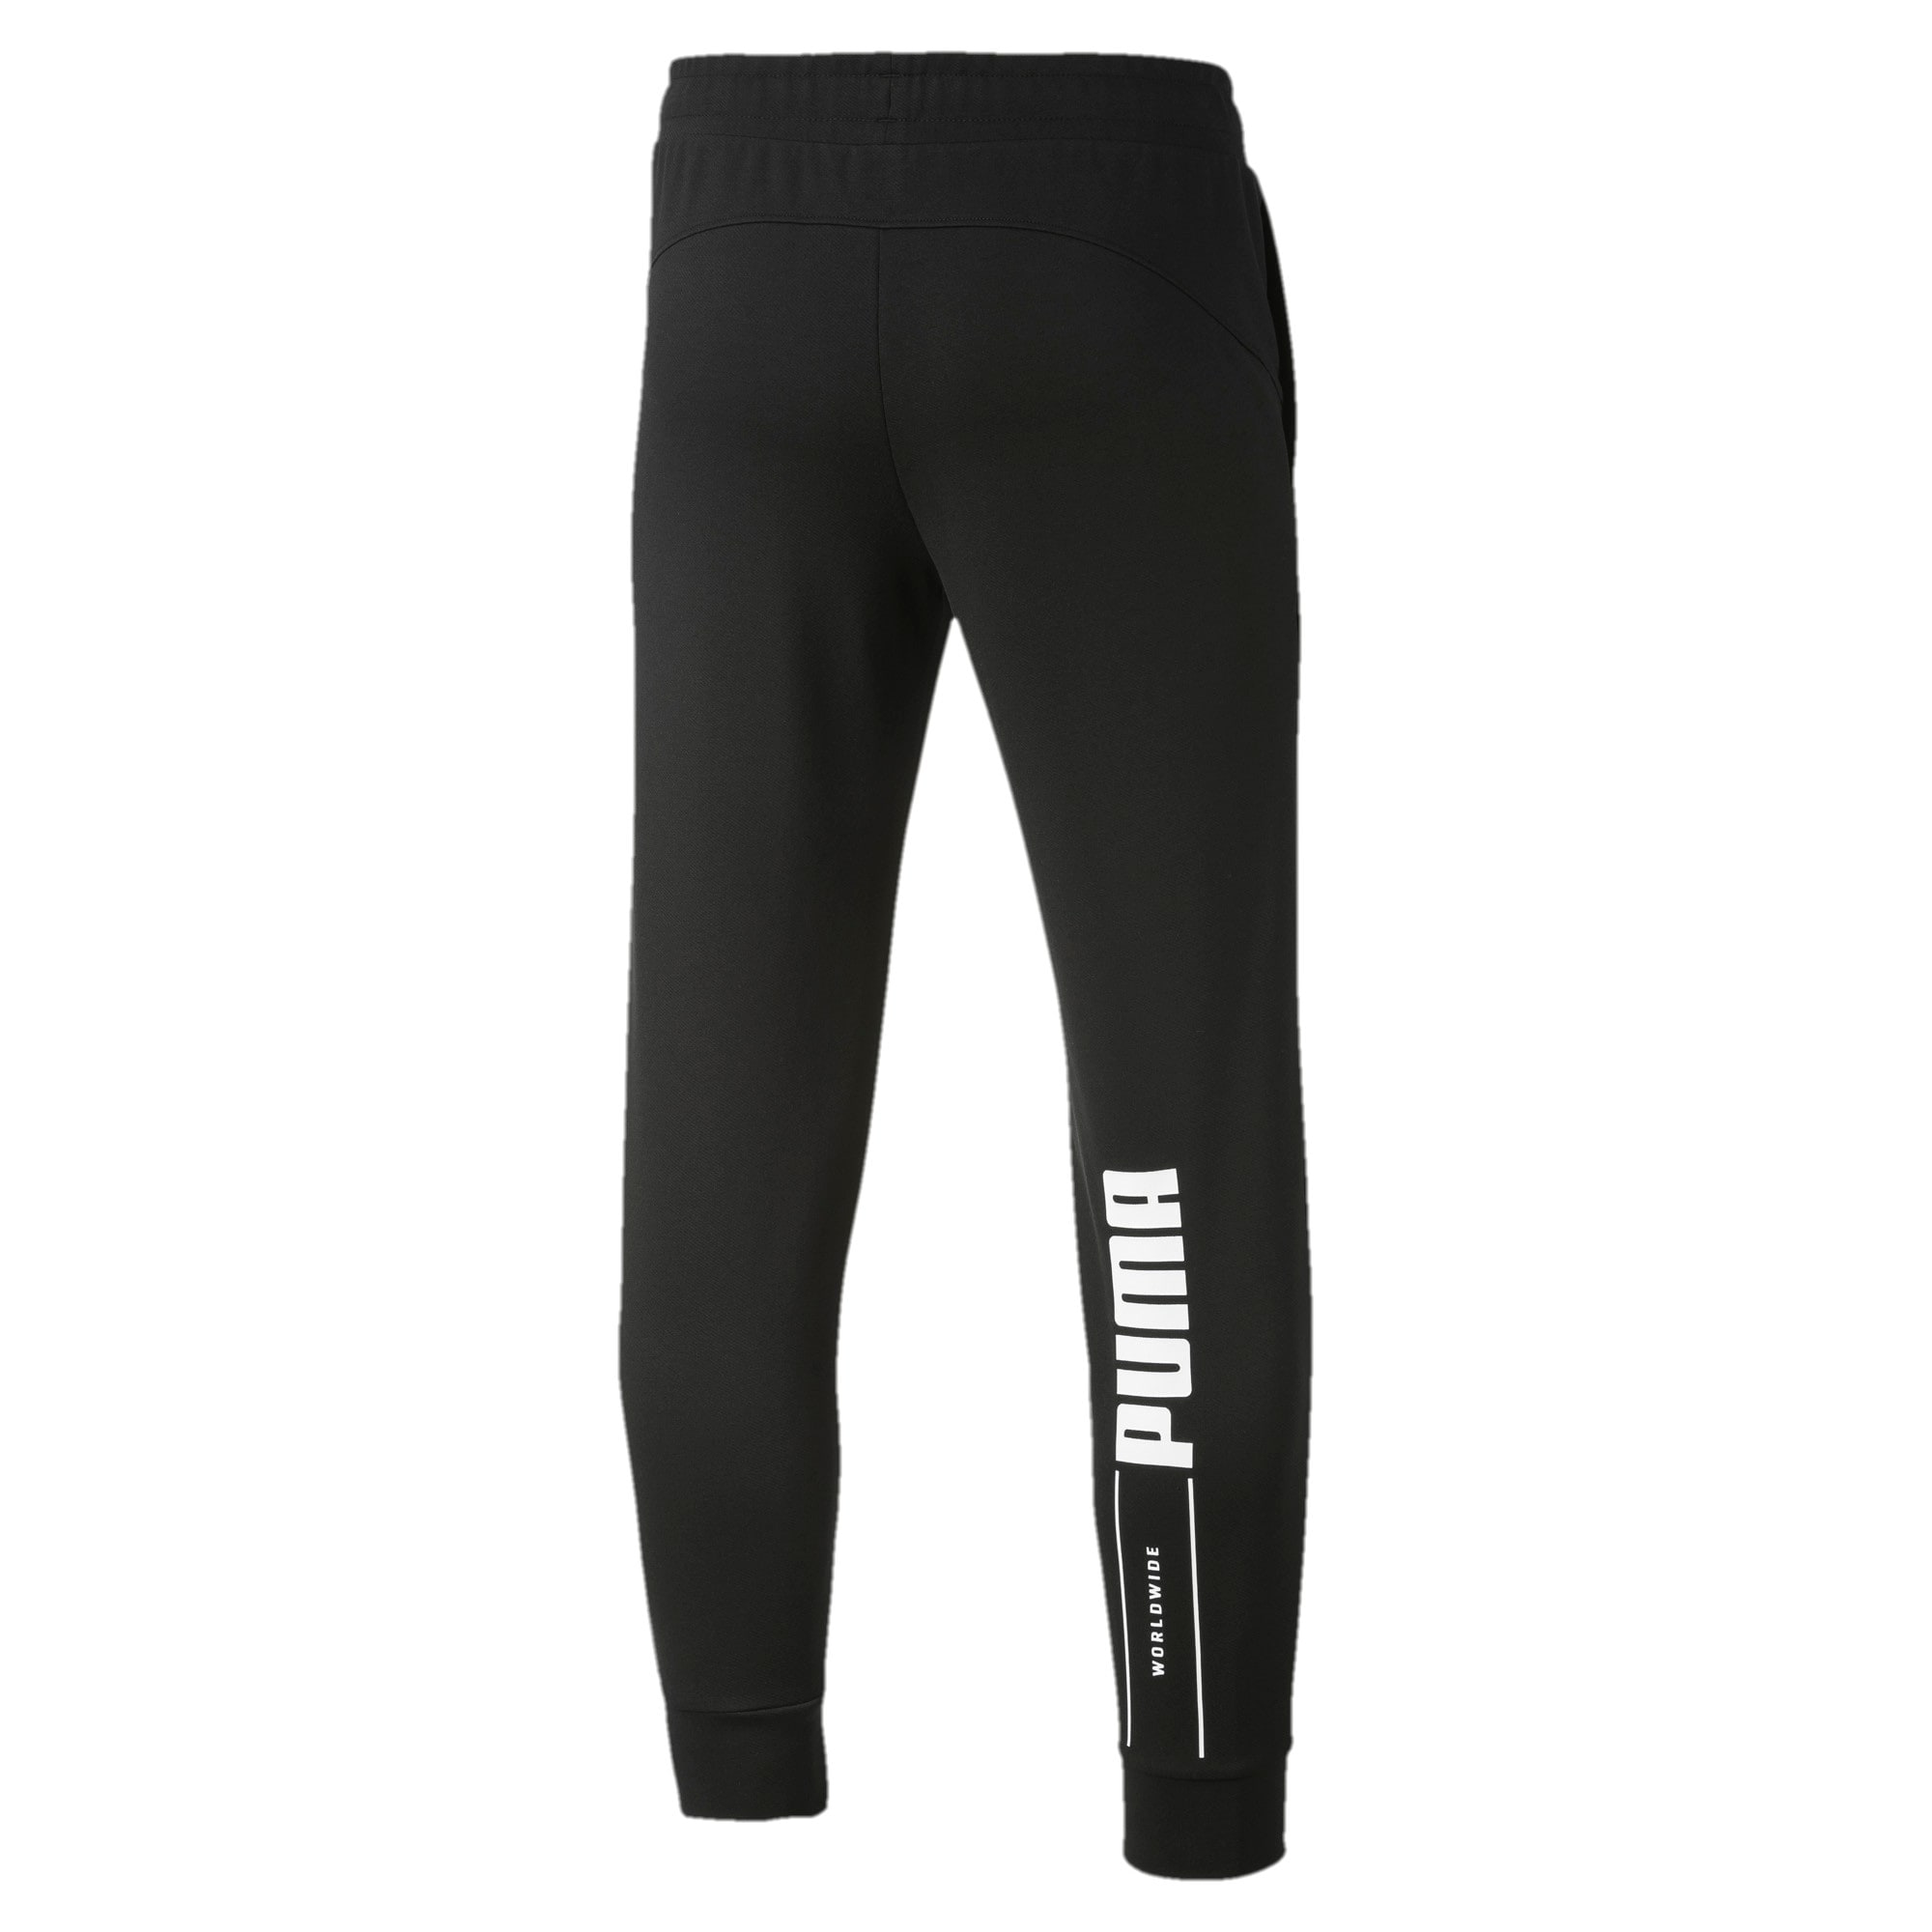 Thumbnail 5 of NU-TILITY Women's Sweatpants, Puma Black, medium